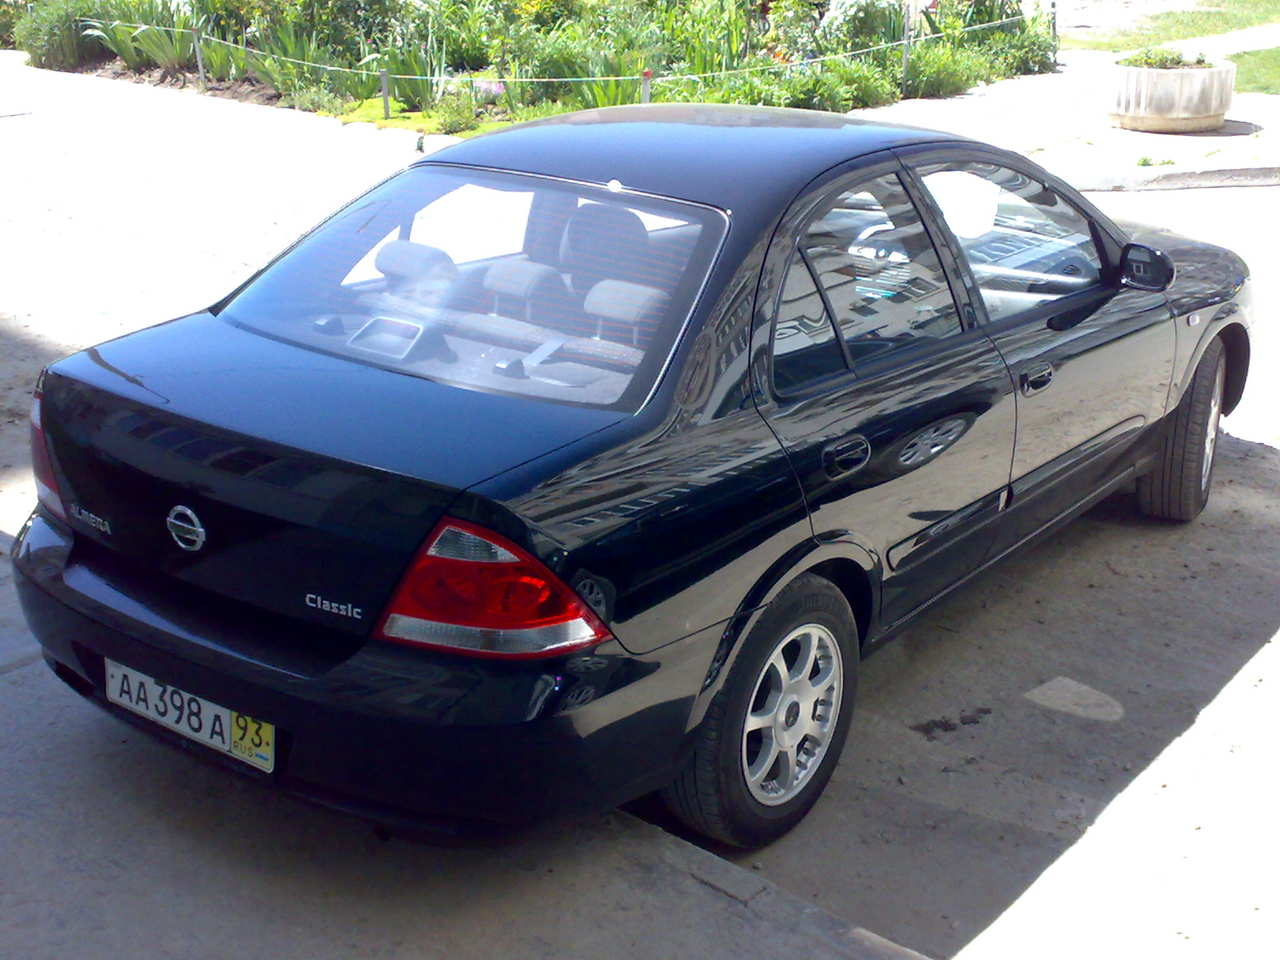 2008 nissan almera classic images gasoline ff manual for sale. Black Bedroom Furniture Sets. Home Design Ideas